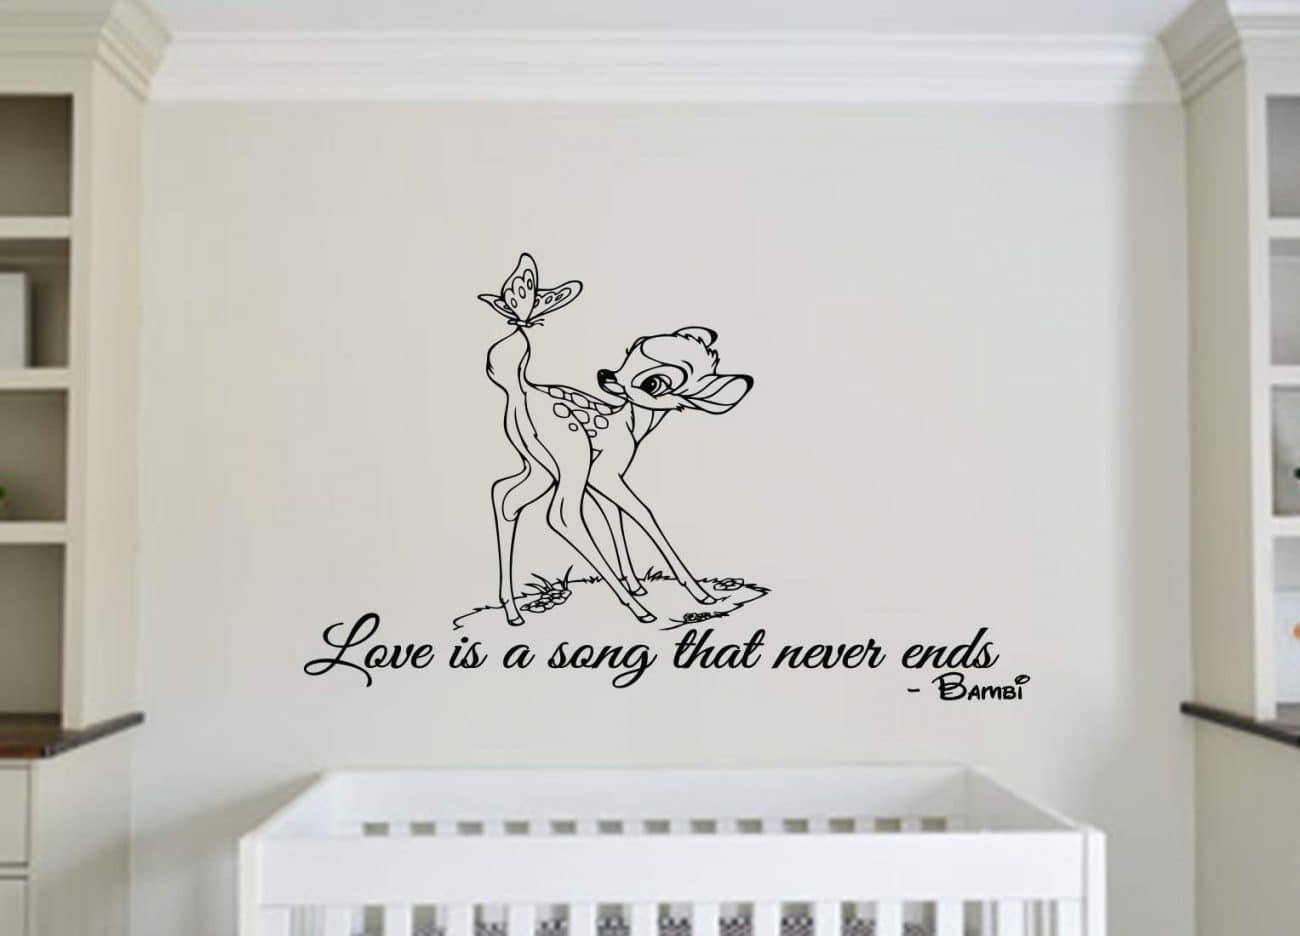 Love is a song wall decal sticker